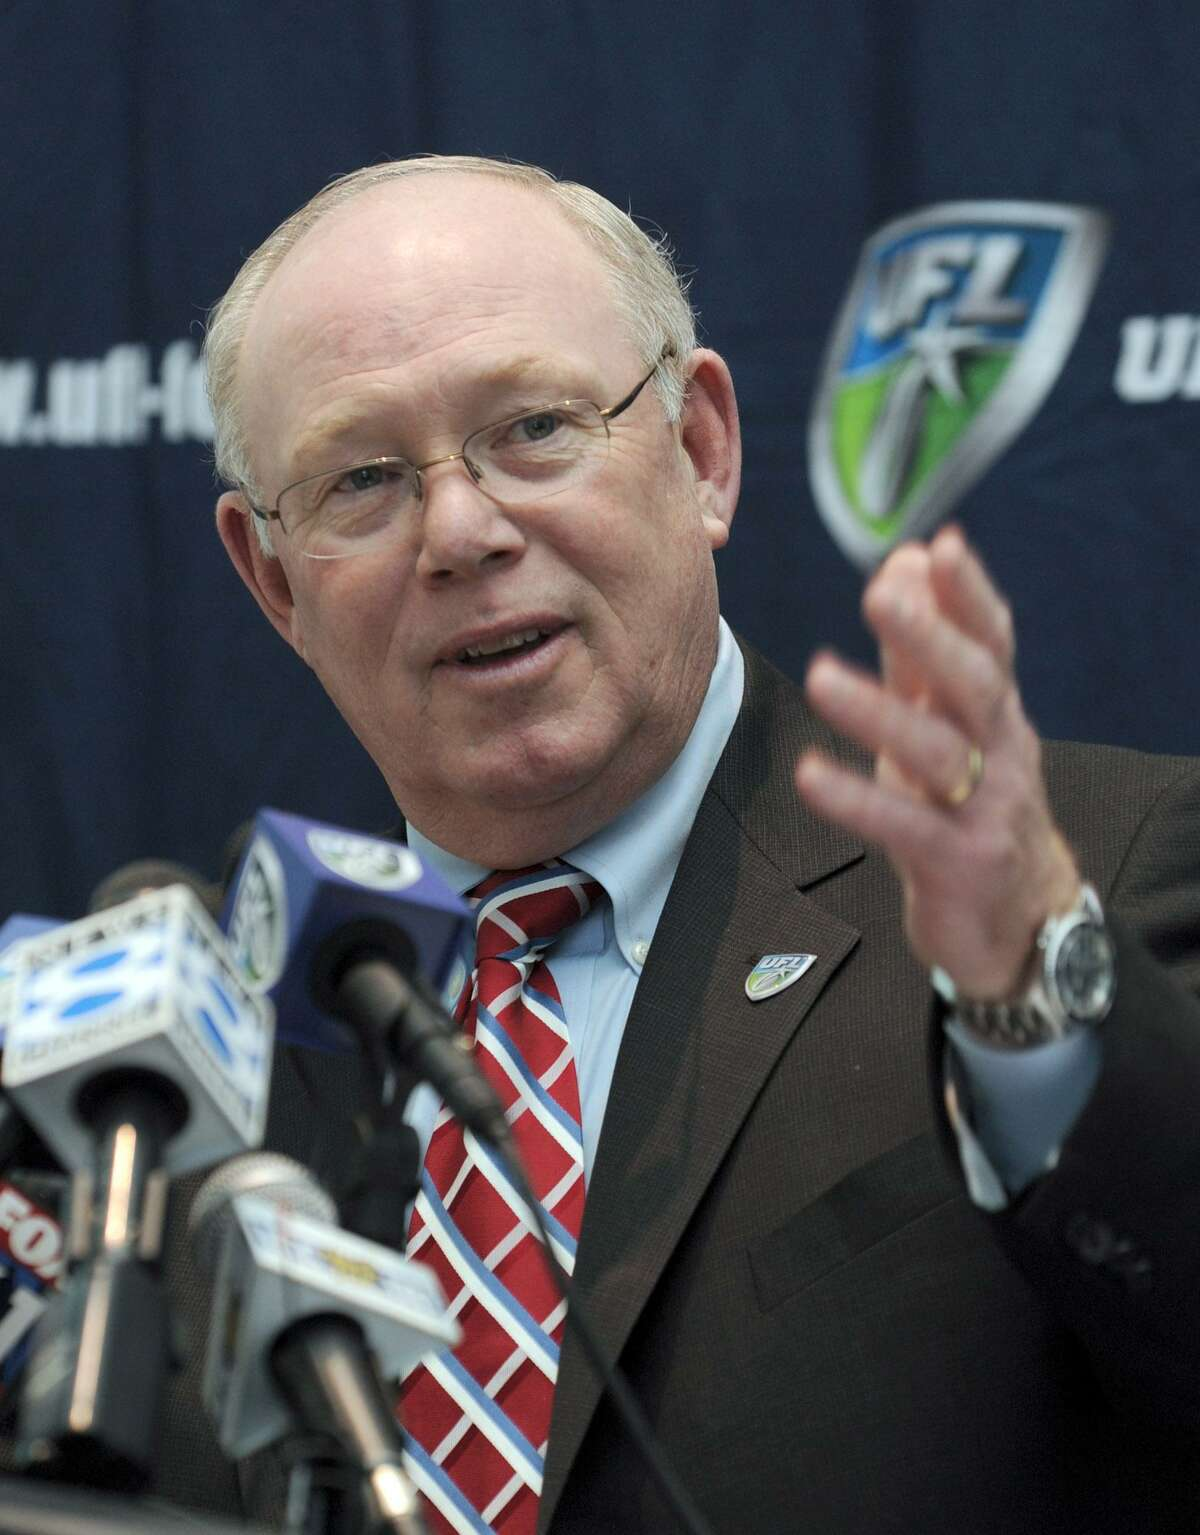 Chris Palmer, a Brewster native and Immaculate High School graduate, speaking at a press conference Tuesday at Rentschler Field in East Hartford. Palmer was named head coach of the United Football League's Hartford team.